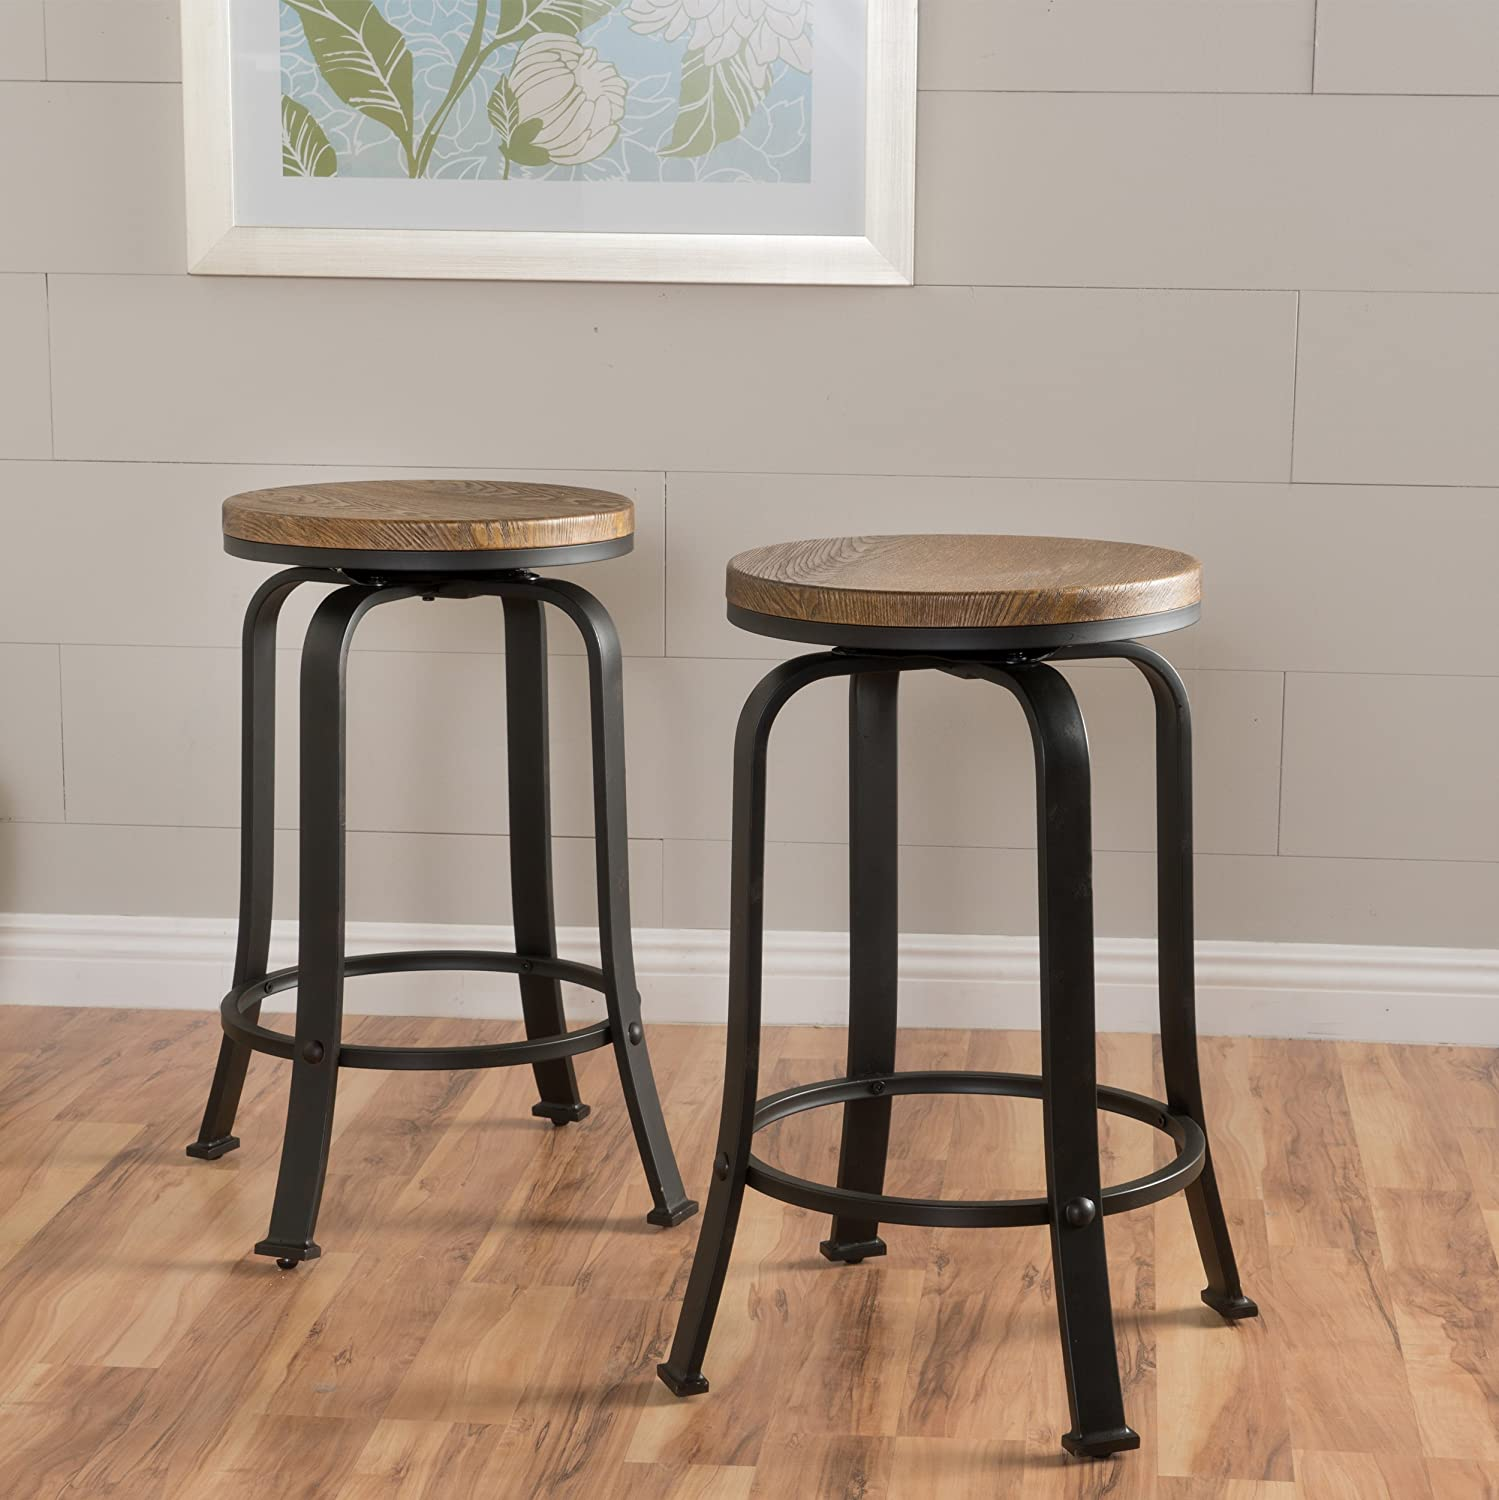 """Christopher Knight Home Skyla Counter Stool (Set Of 2), Dimensions: 17.00""""D x 17.00""""W x 24.00""""H, Natural/Weathered Black"""